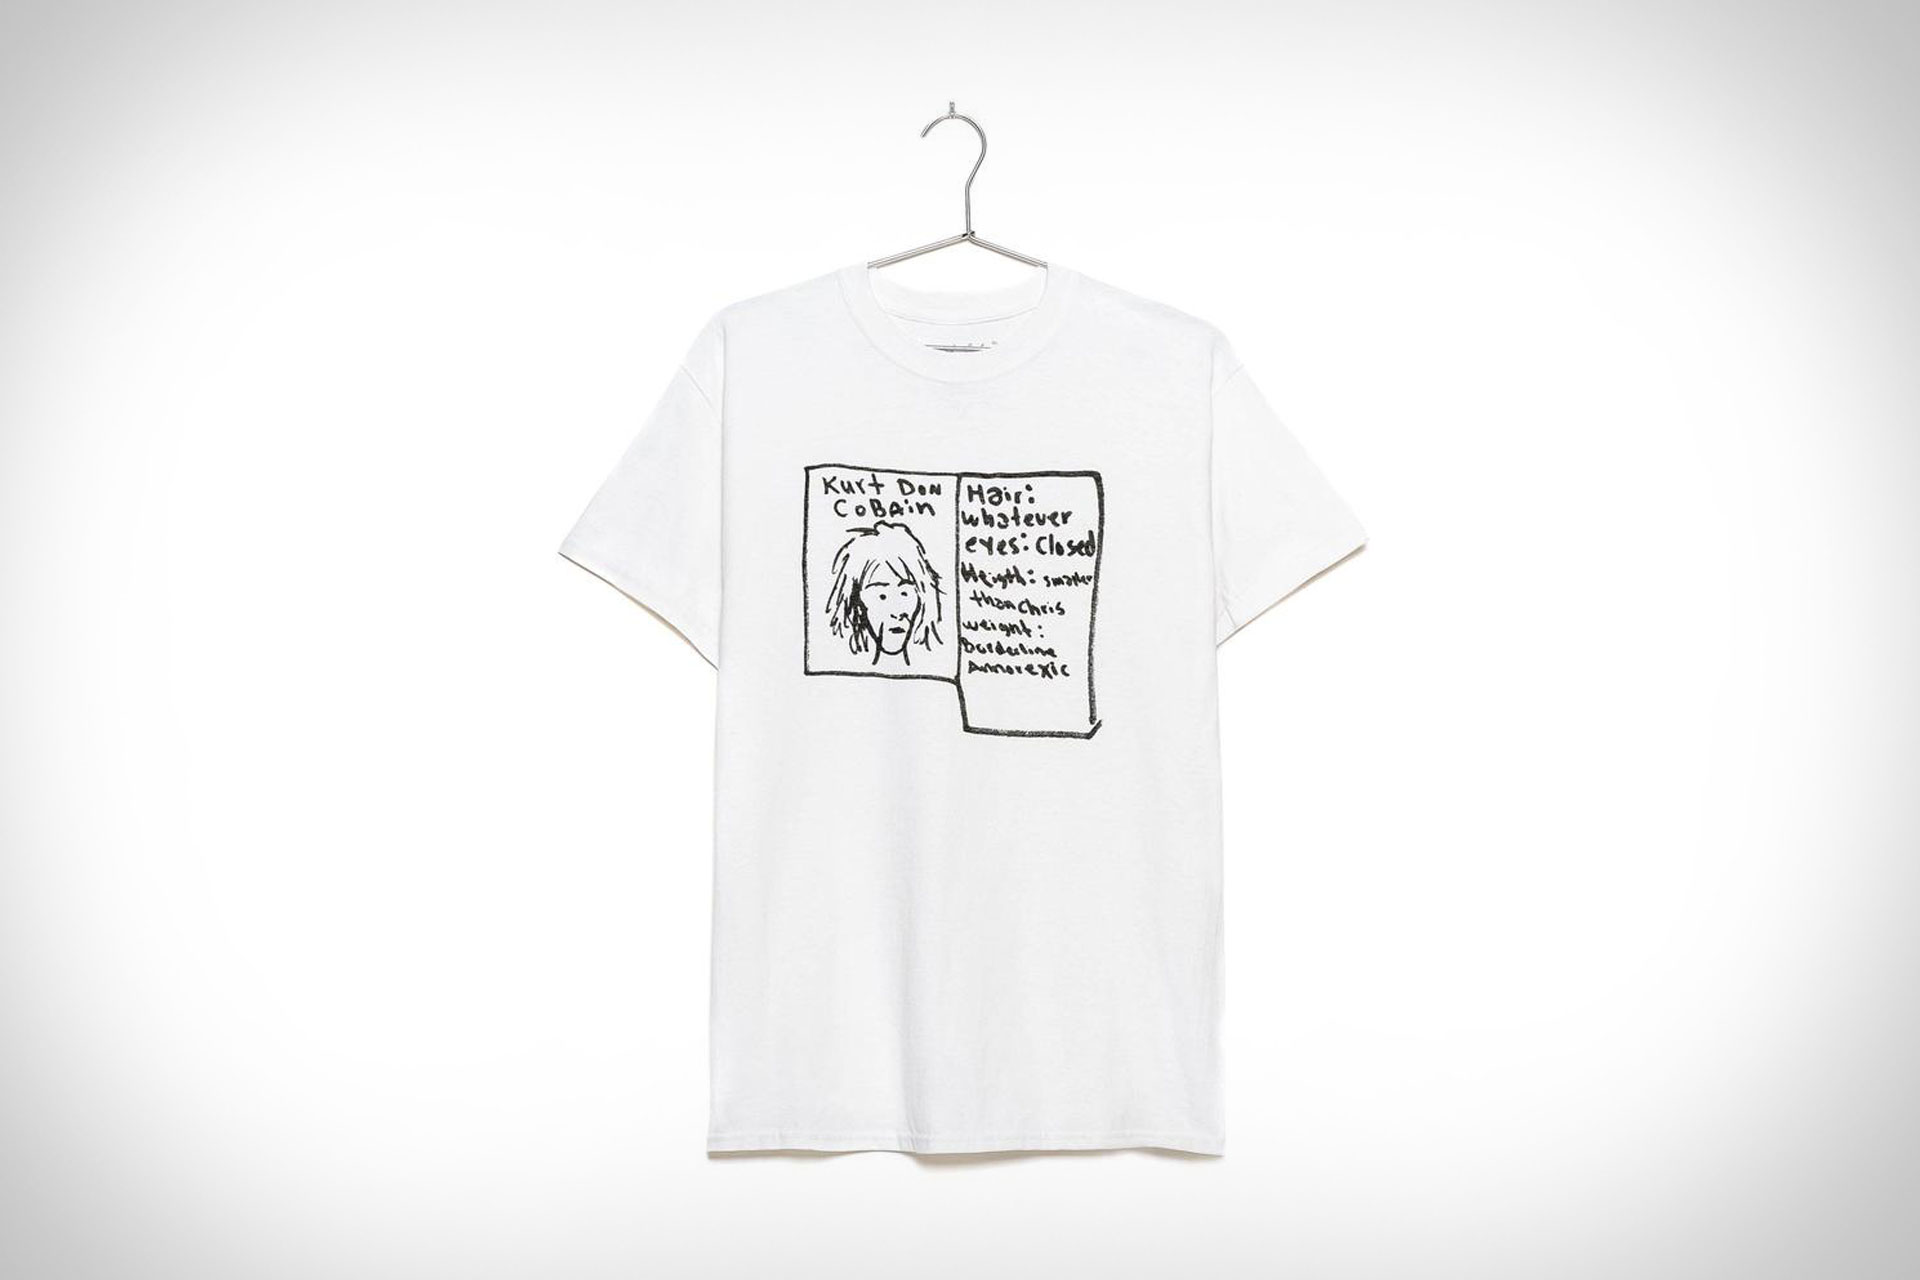 Kurt Was Here Clothing Collection